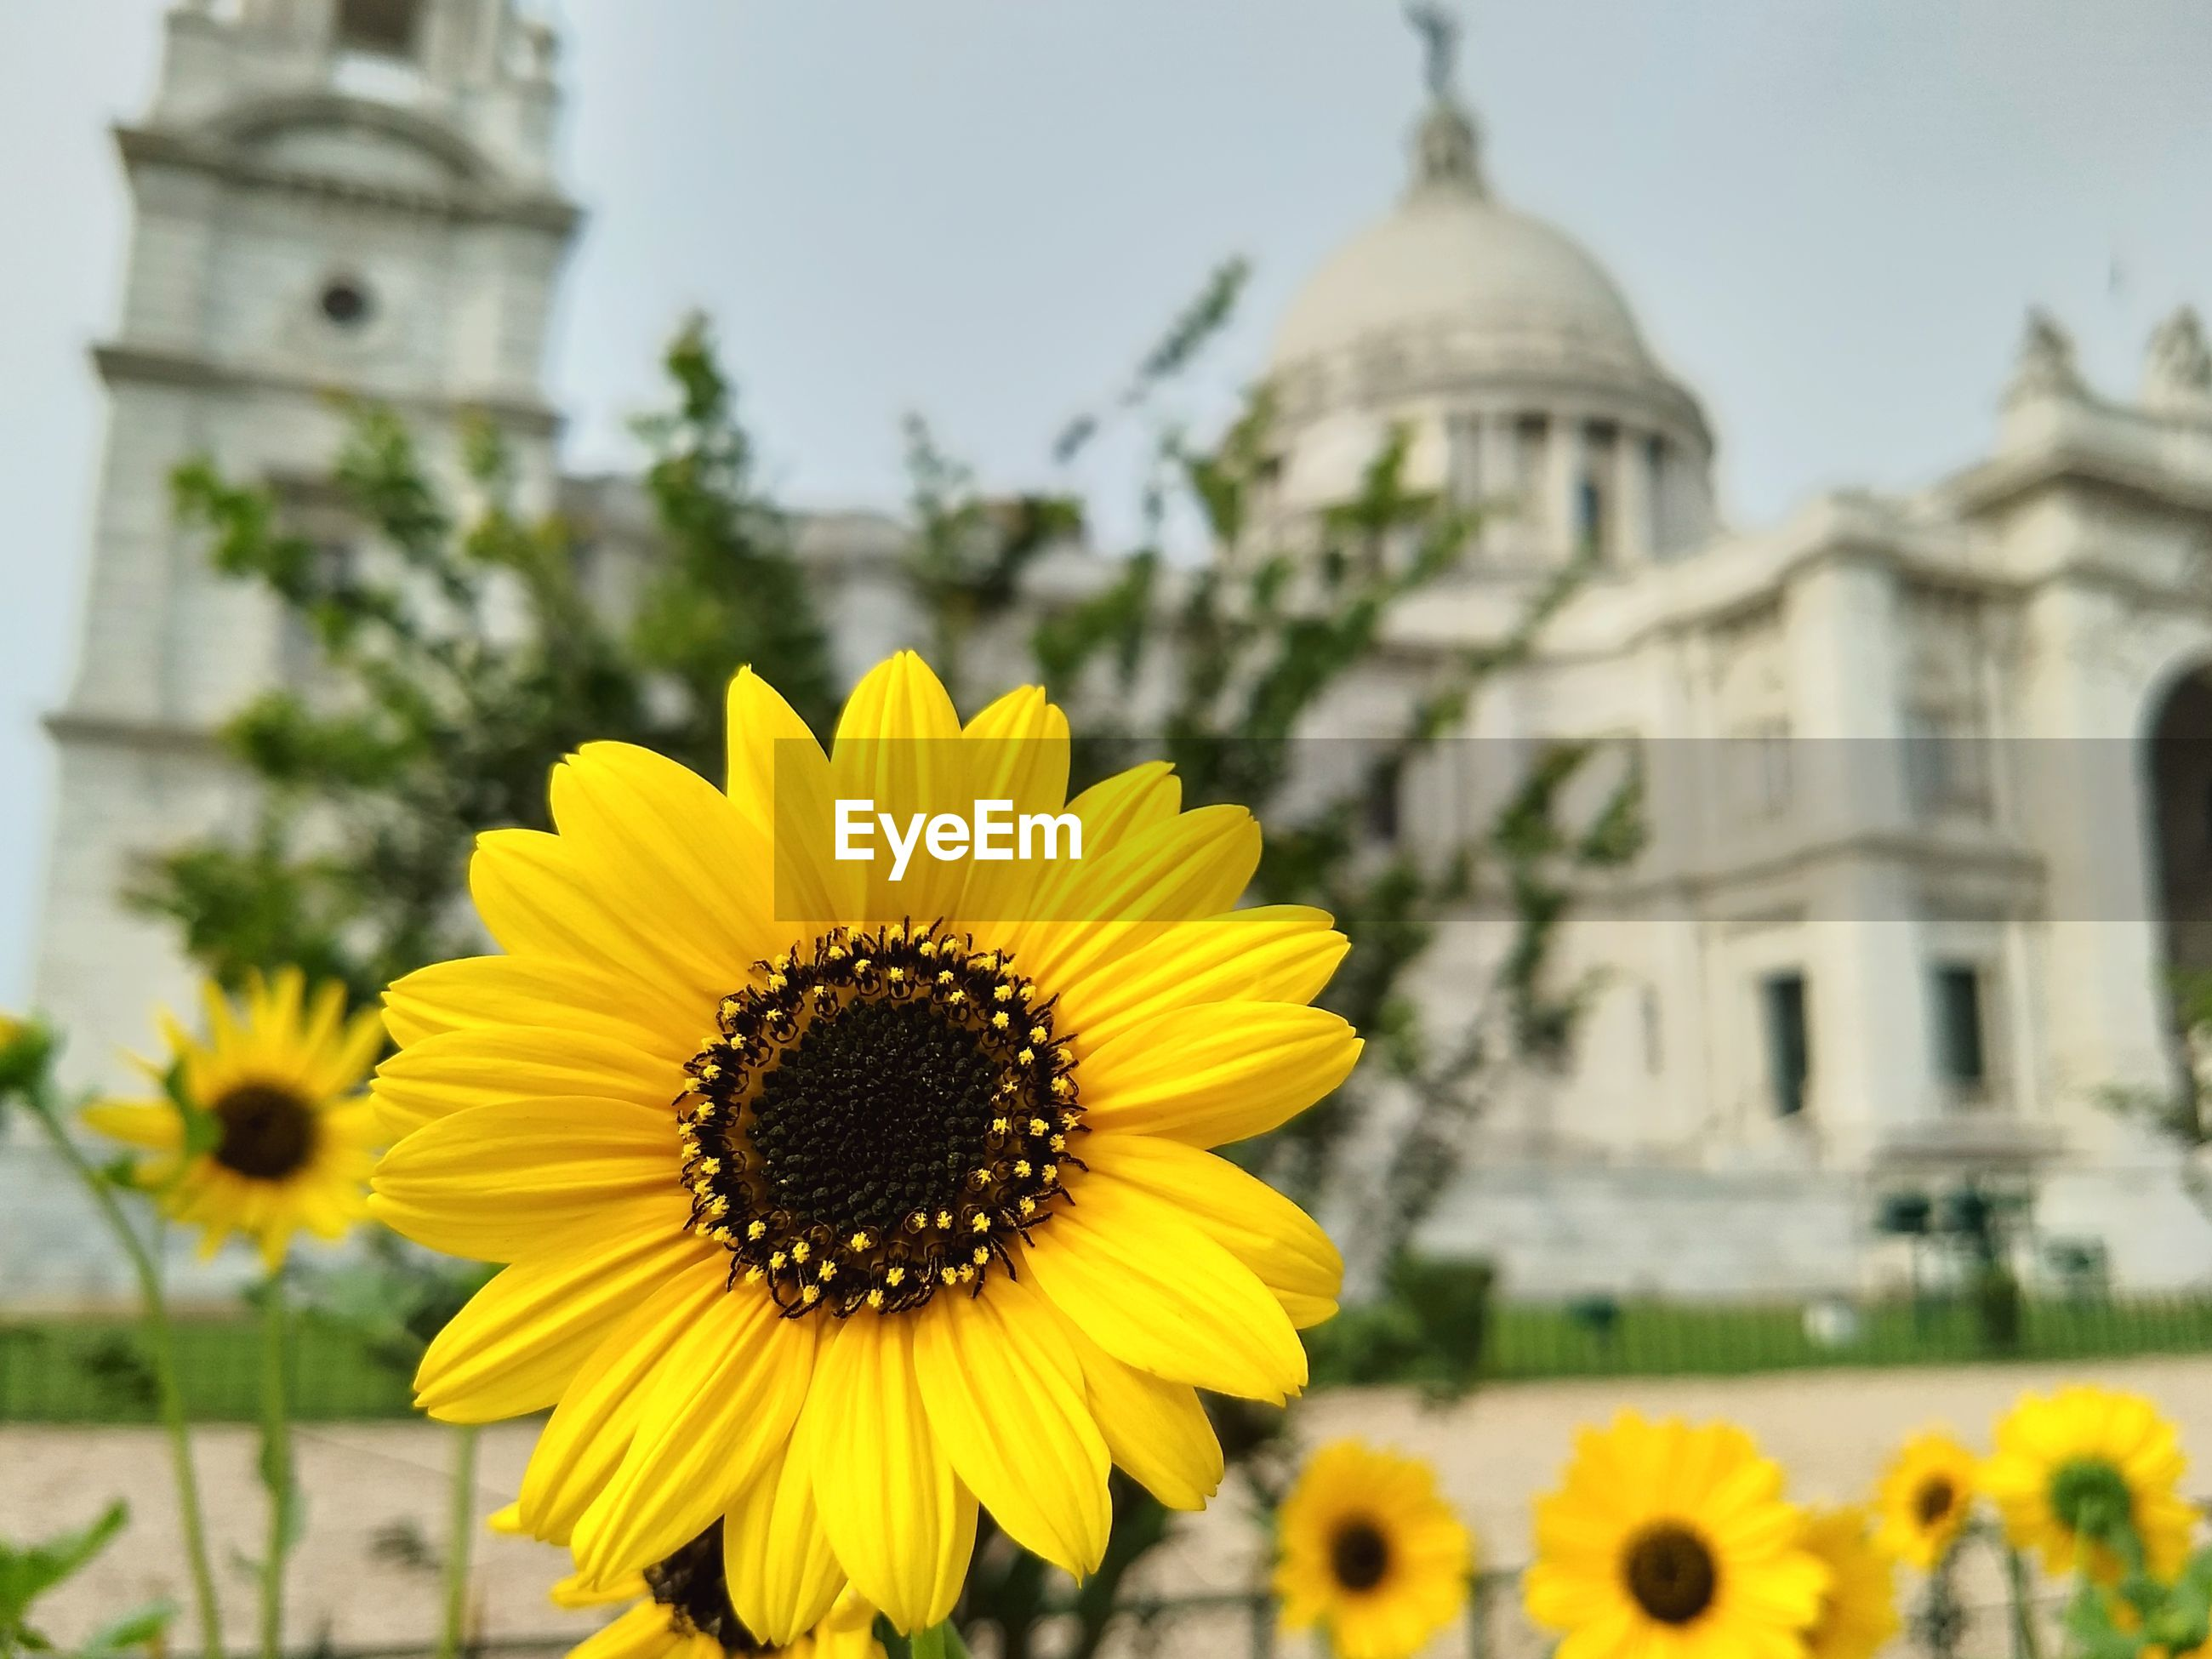 SUNFLOWERS AGAINST BUILDINGS AND YELLOW FLOWER